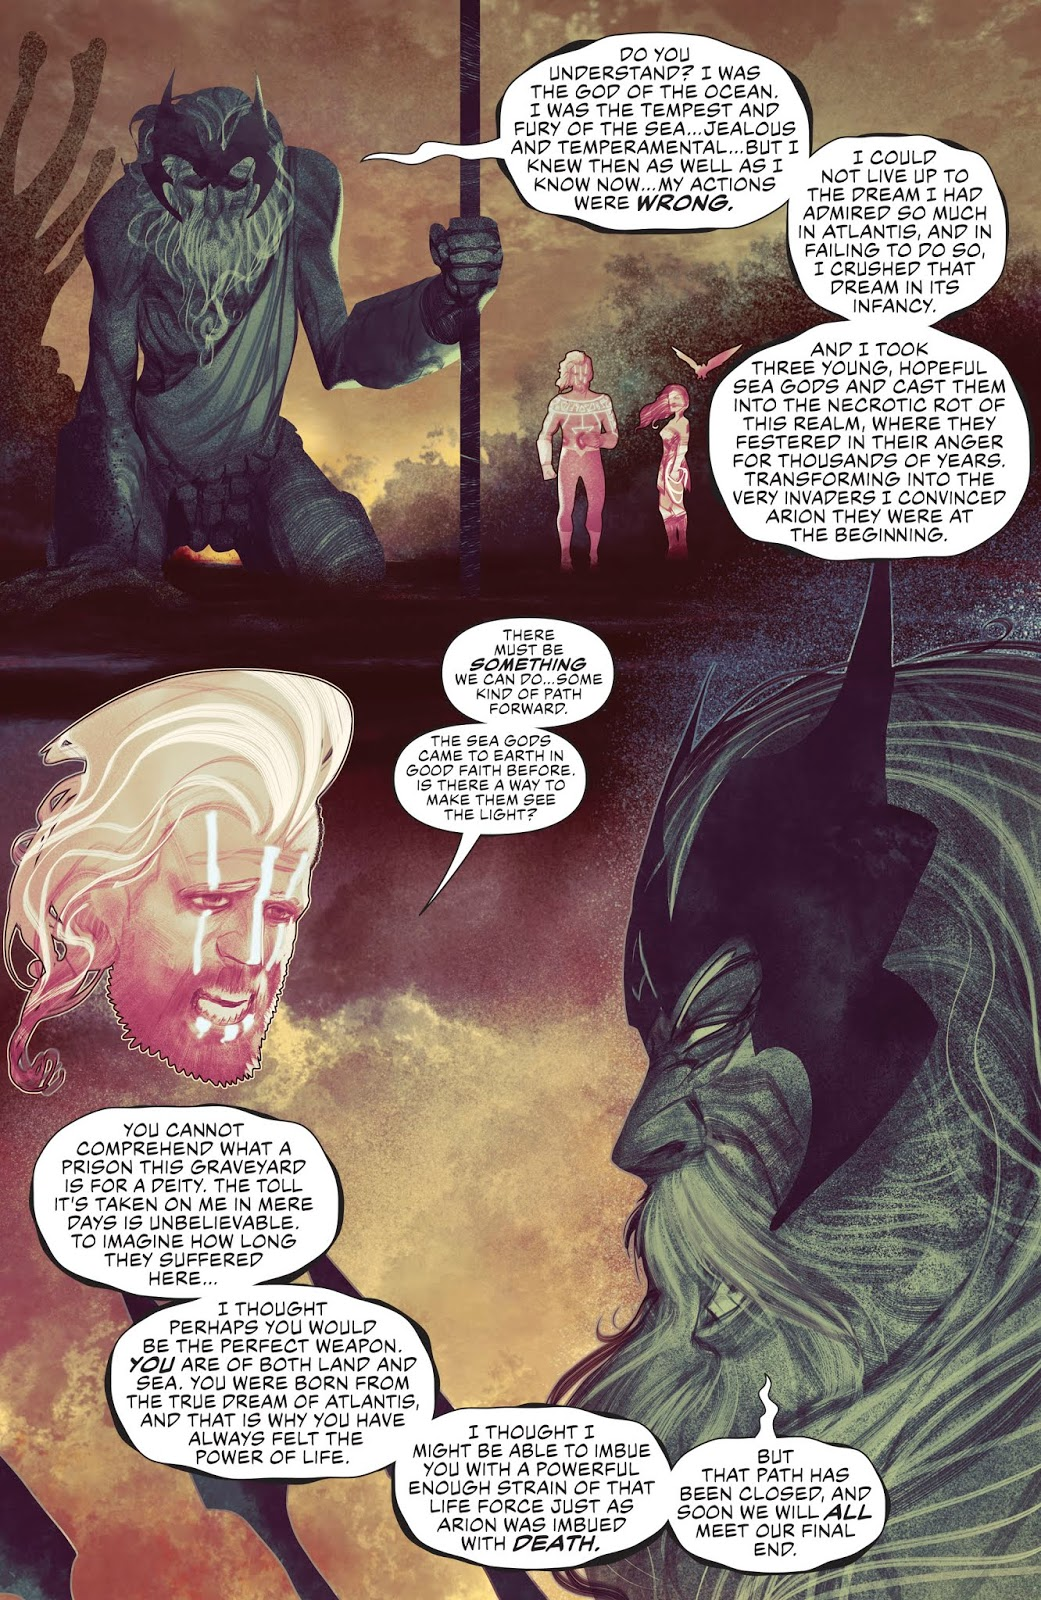 DC Comics Universe, Justice League #12 & Aquaman #42 Spoilers ...